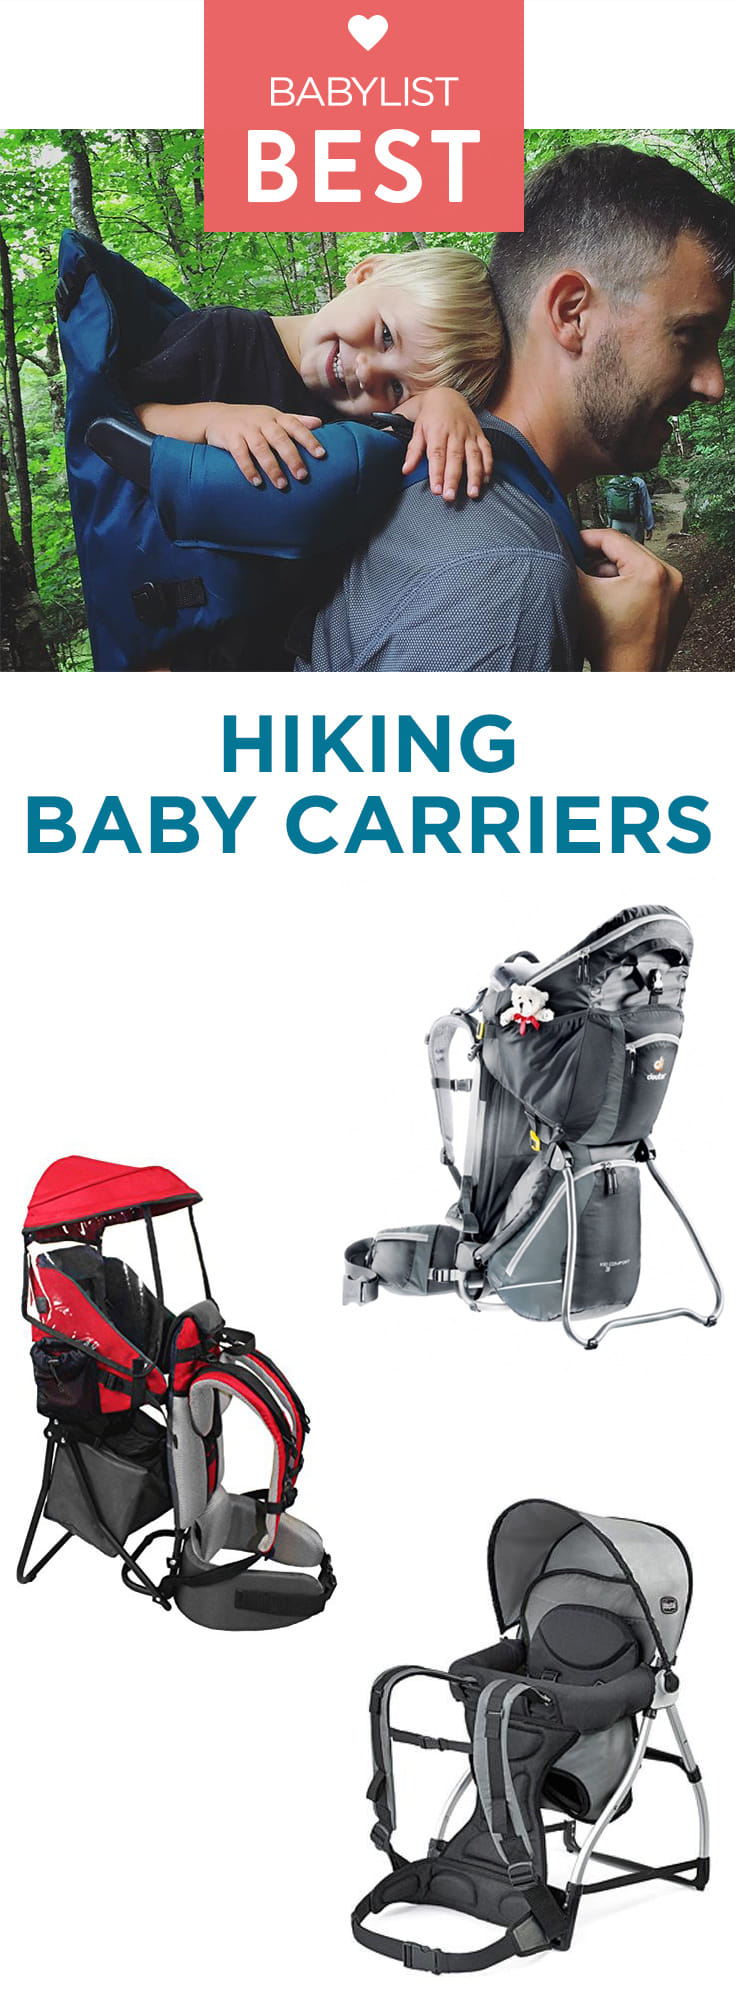 A hiking backpack makes tackling the great outdoors with your little one in tow a whole lot easier.